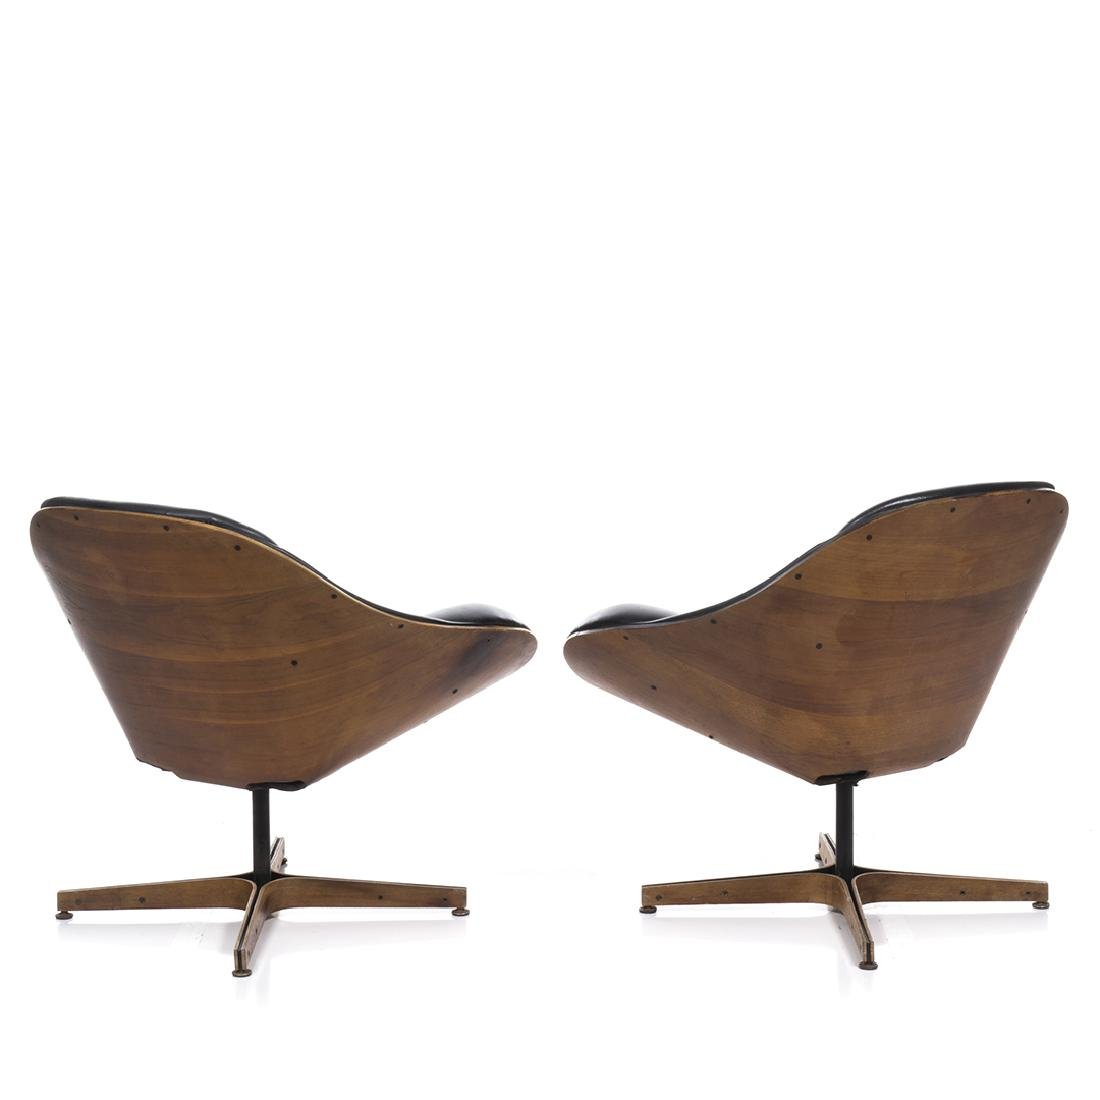 George Mulhauser Lounge Chairs (2) - 2